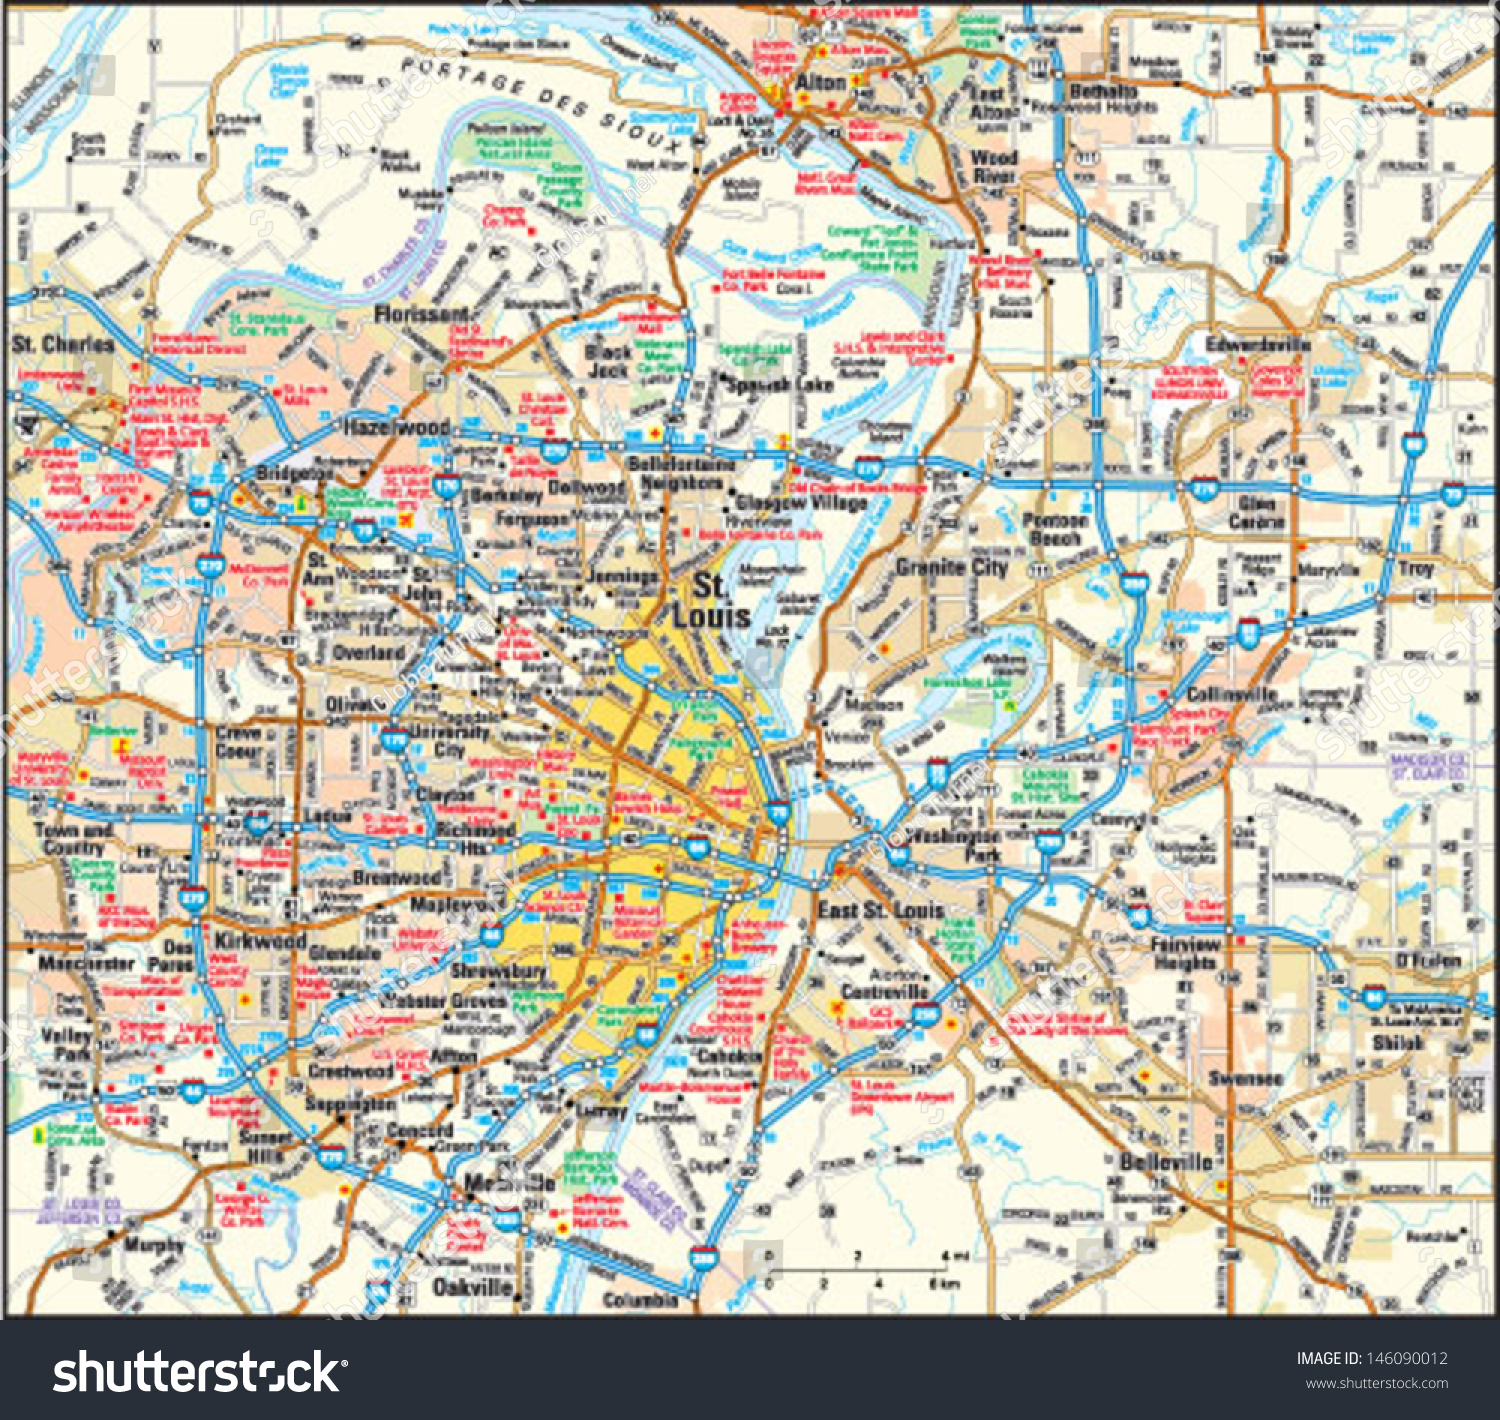 St Louis Missouri Area Map Stock Vector (Royalty Free) 146090012 ...